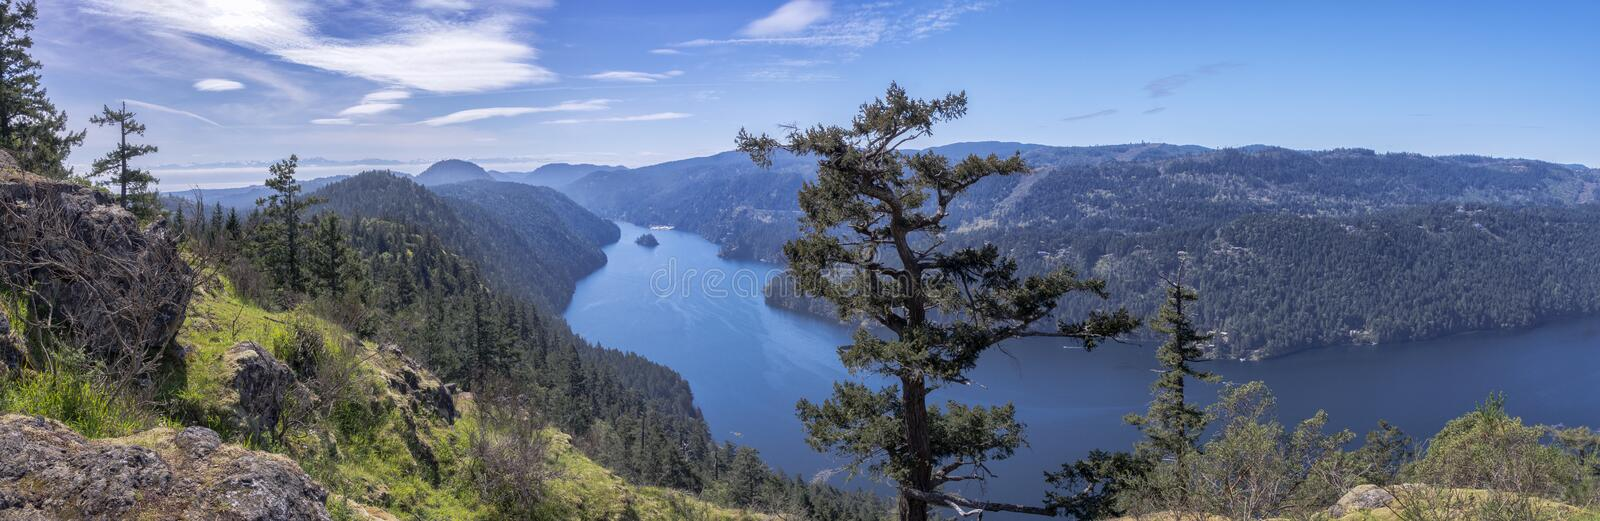 Download A Panoramic View Of A Beautiful Fiord, British Columbia, Canada Stock Image - Image of ocean, inlet: 69442383